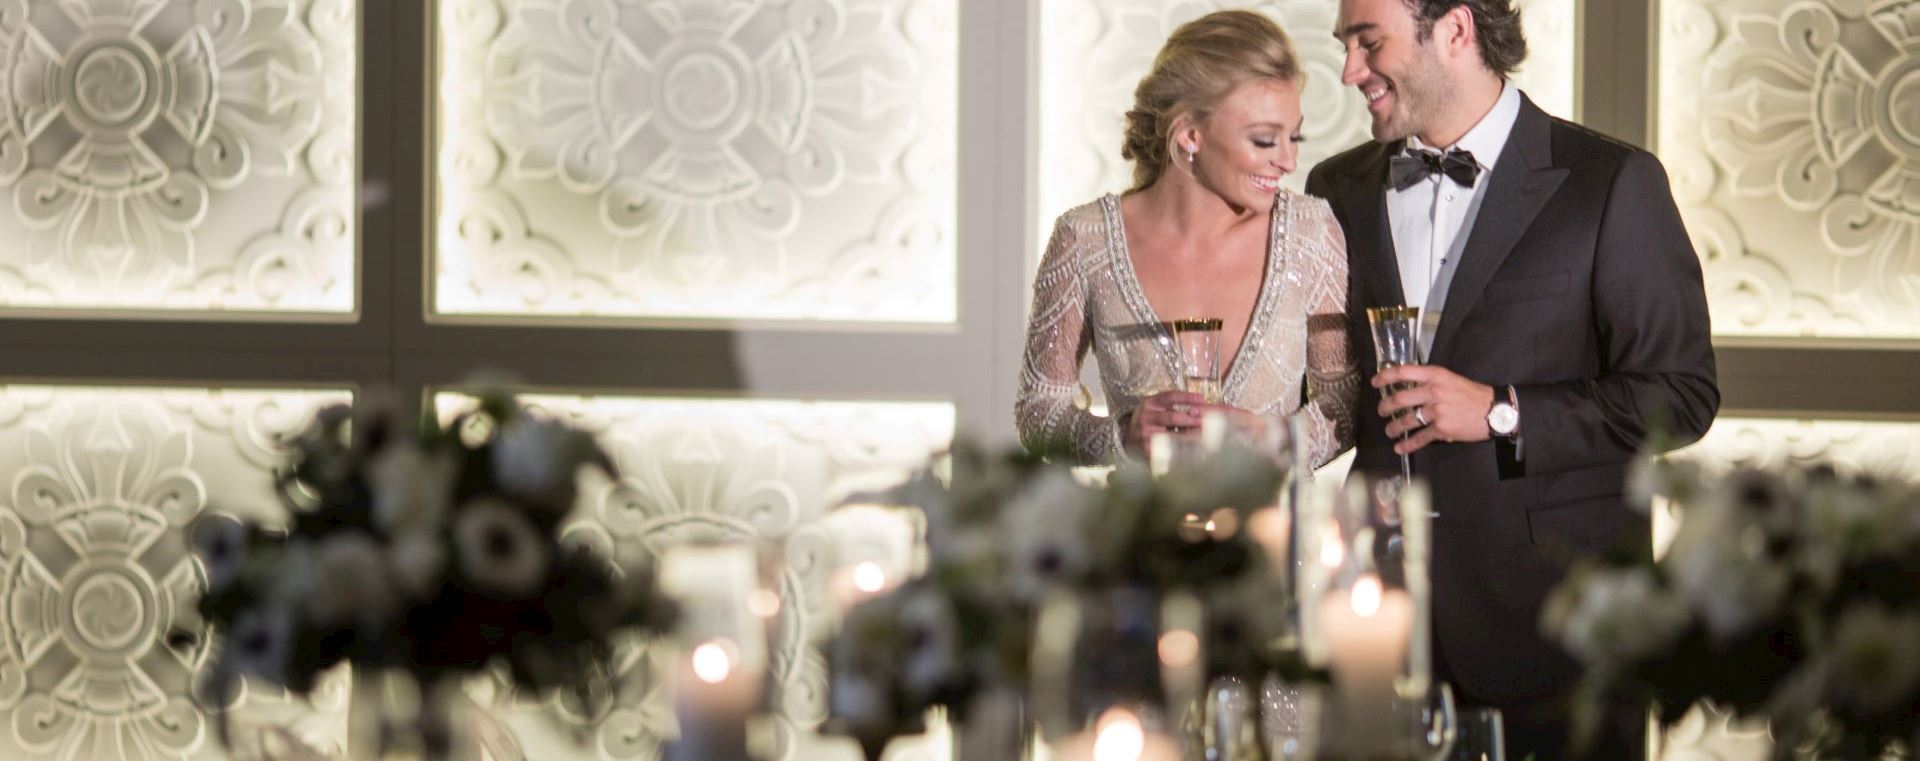 Weddings at Hotel Ivy, A Luxury Collection Hotel, Minneapolis